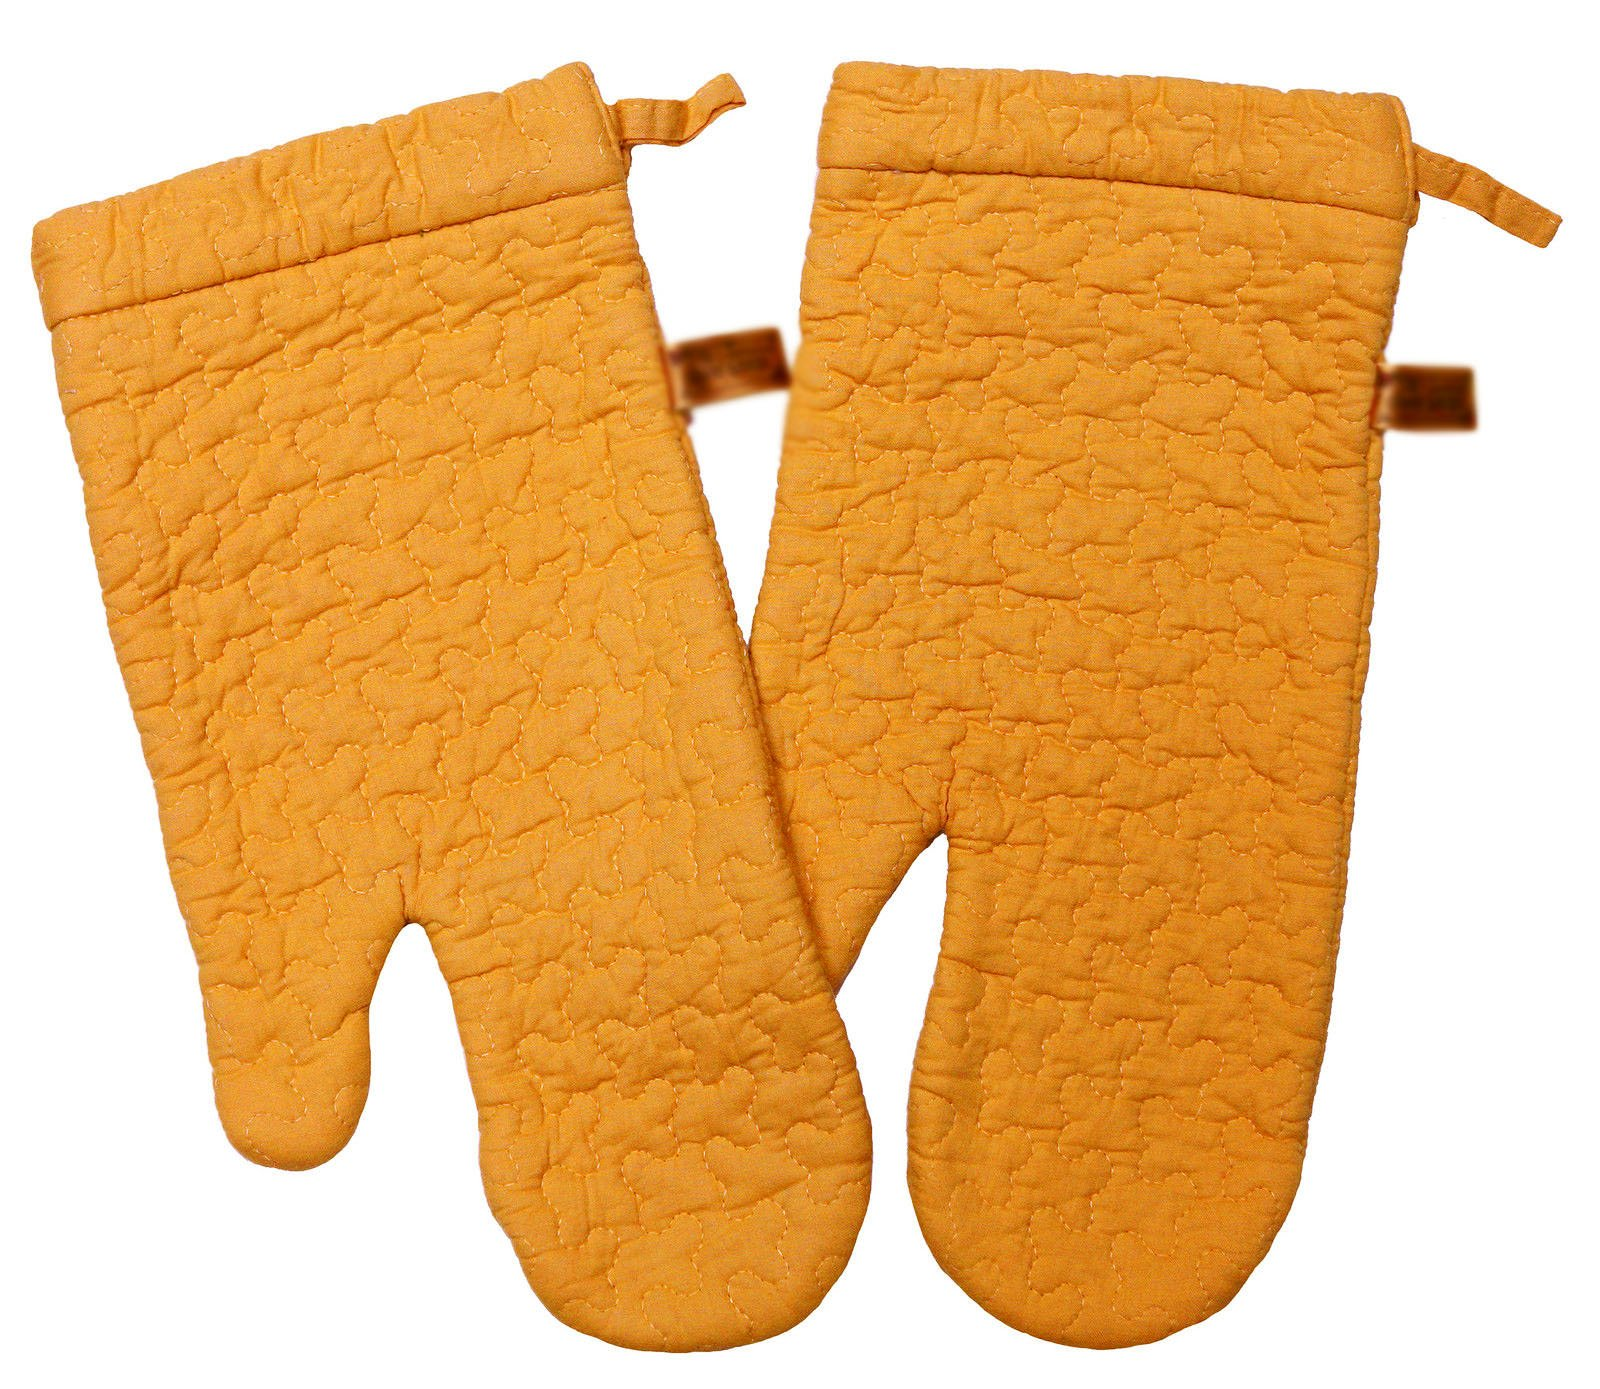 "Custom & Durable {14"" x 6.5"" Inch Each} 4 Set Pack of Mid Size ""Non-Slip"" Pot Holders Gloves Made of Cotton for Carrying Hot Dishes w/ Warm Honey Quilted Classic Puzzle Pattern Style {Yellow} by mySimple Products"